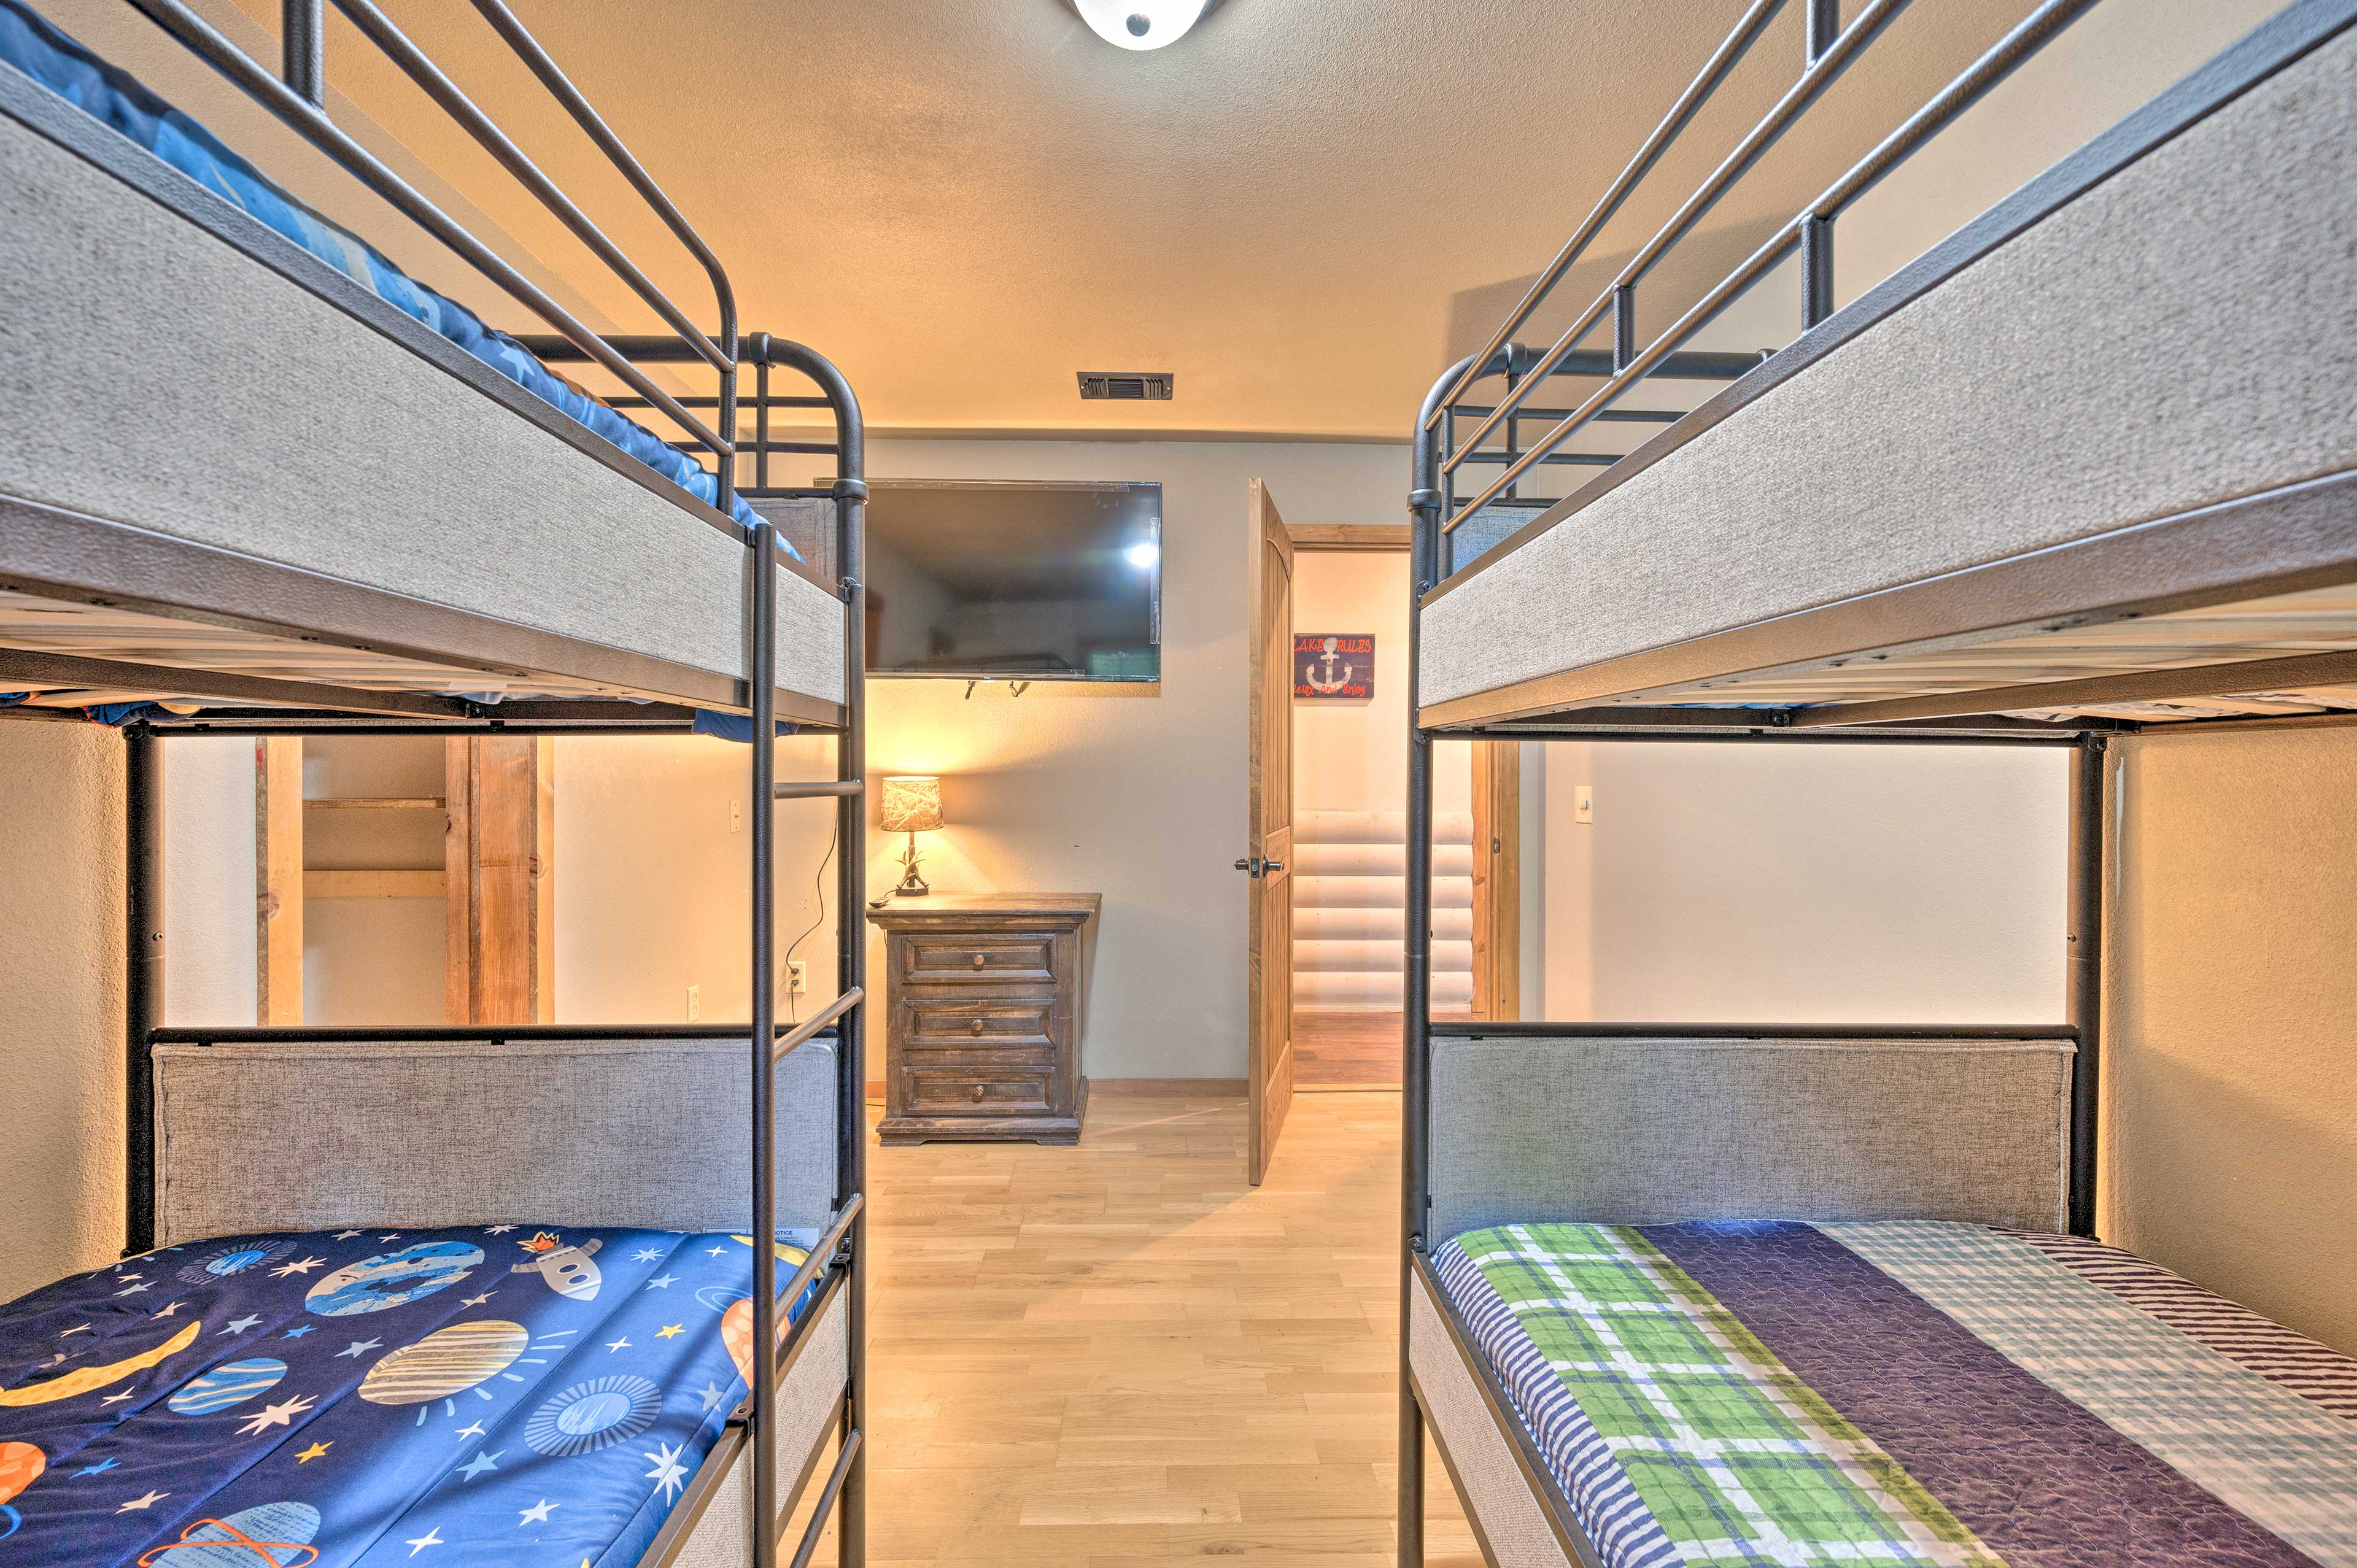 Each room features its own flat-screen TV.